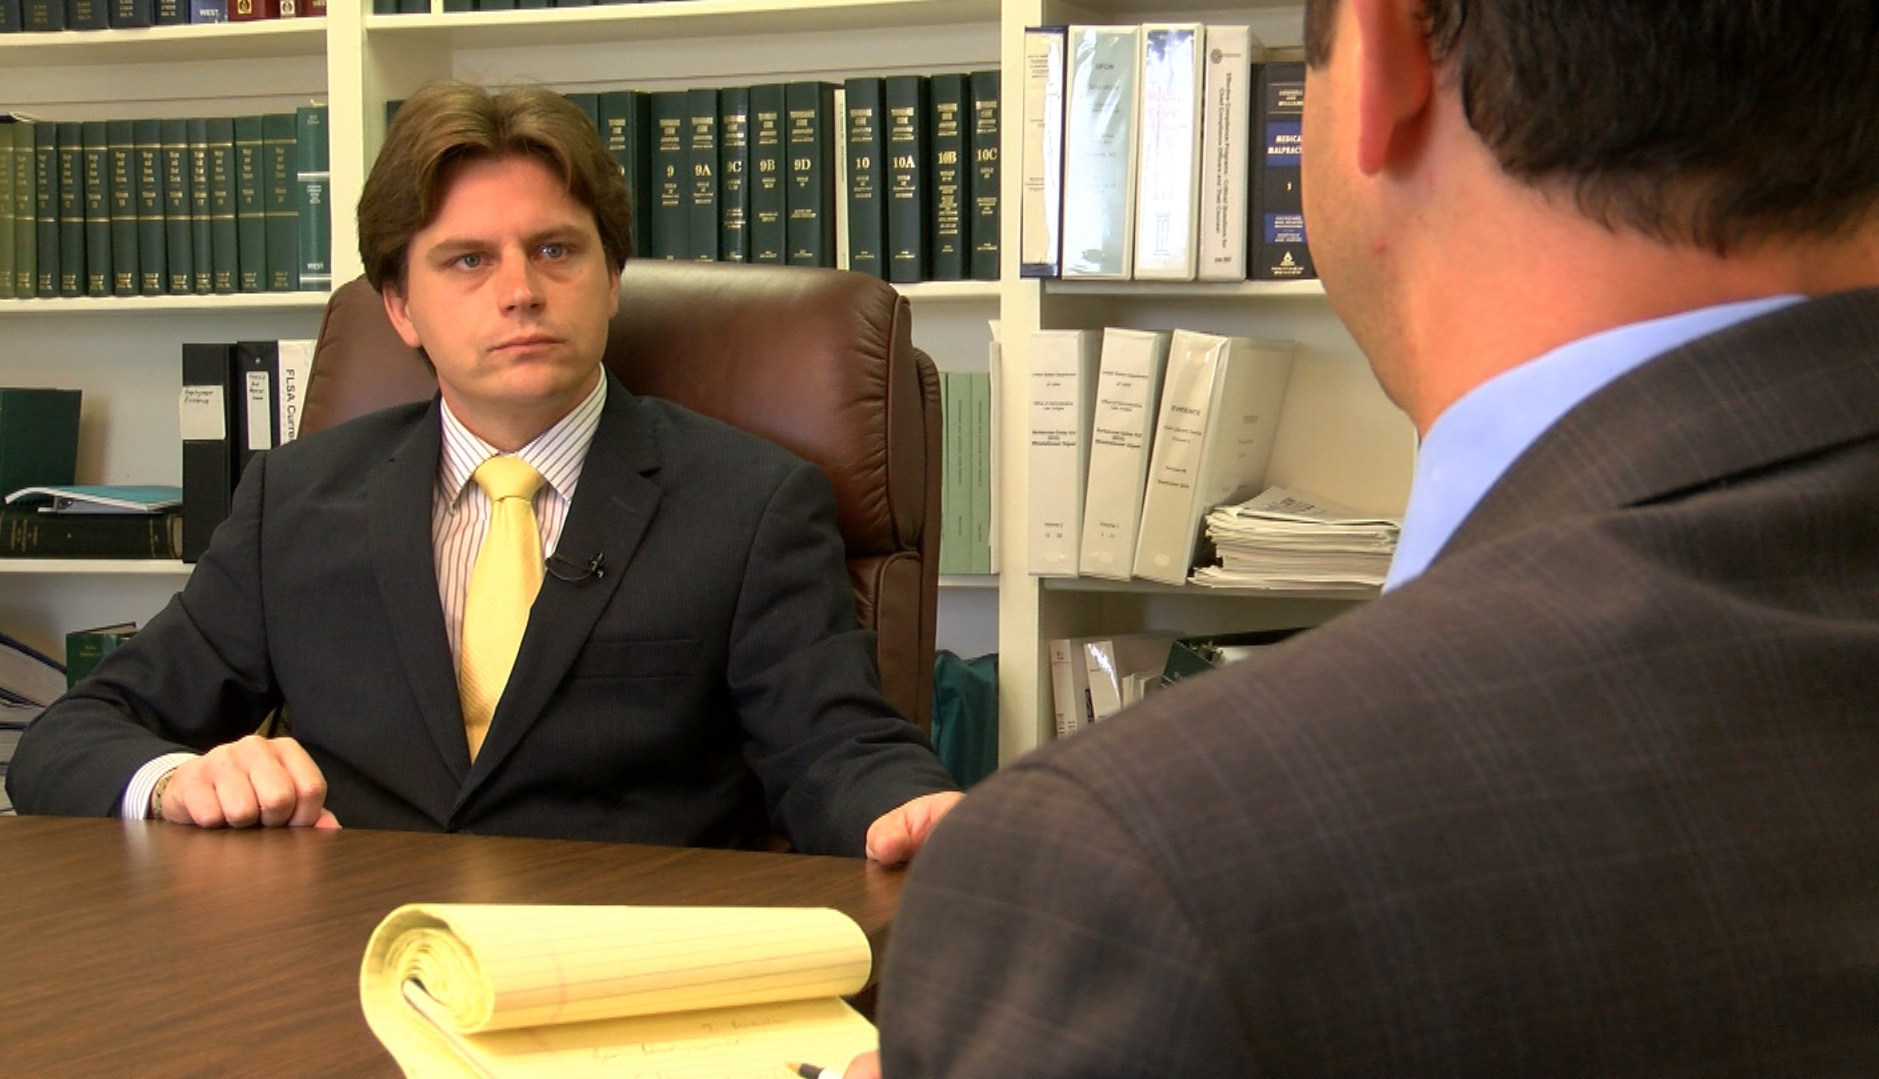 LAWYER NATE_346217